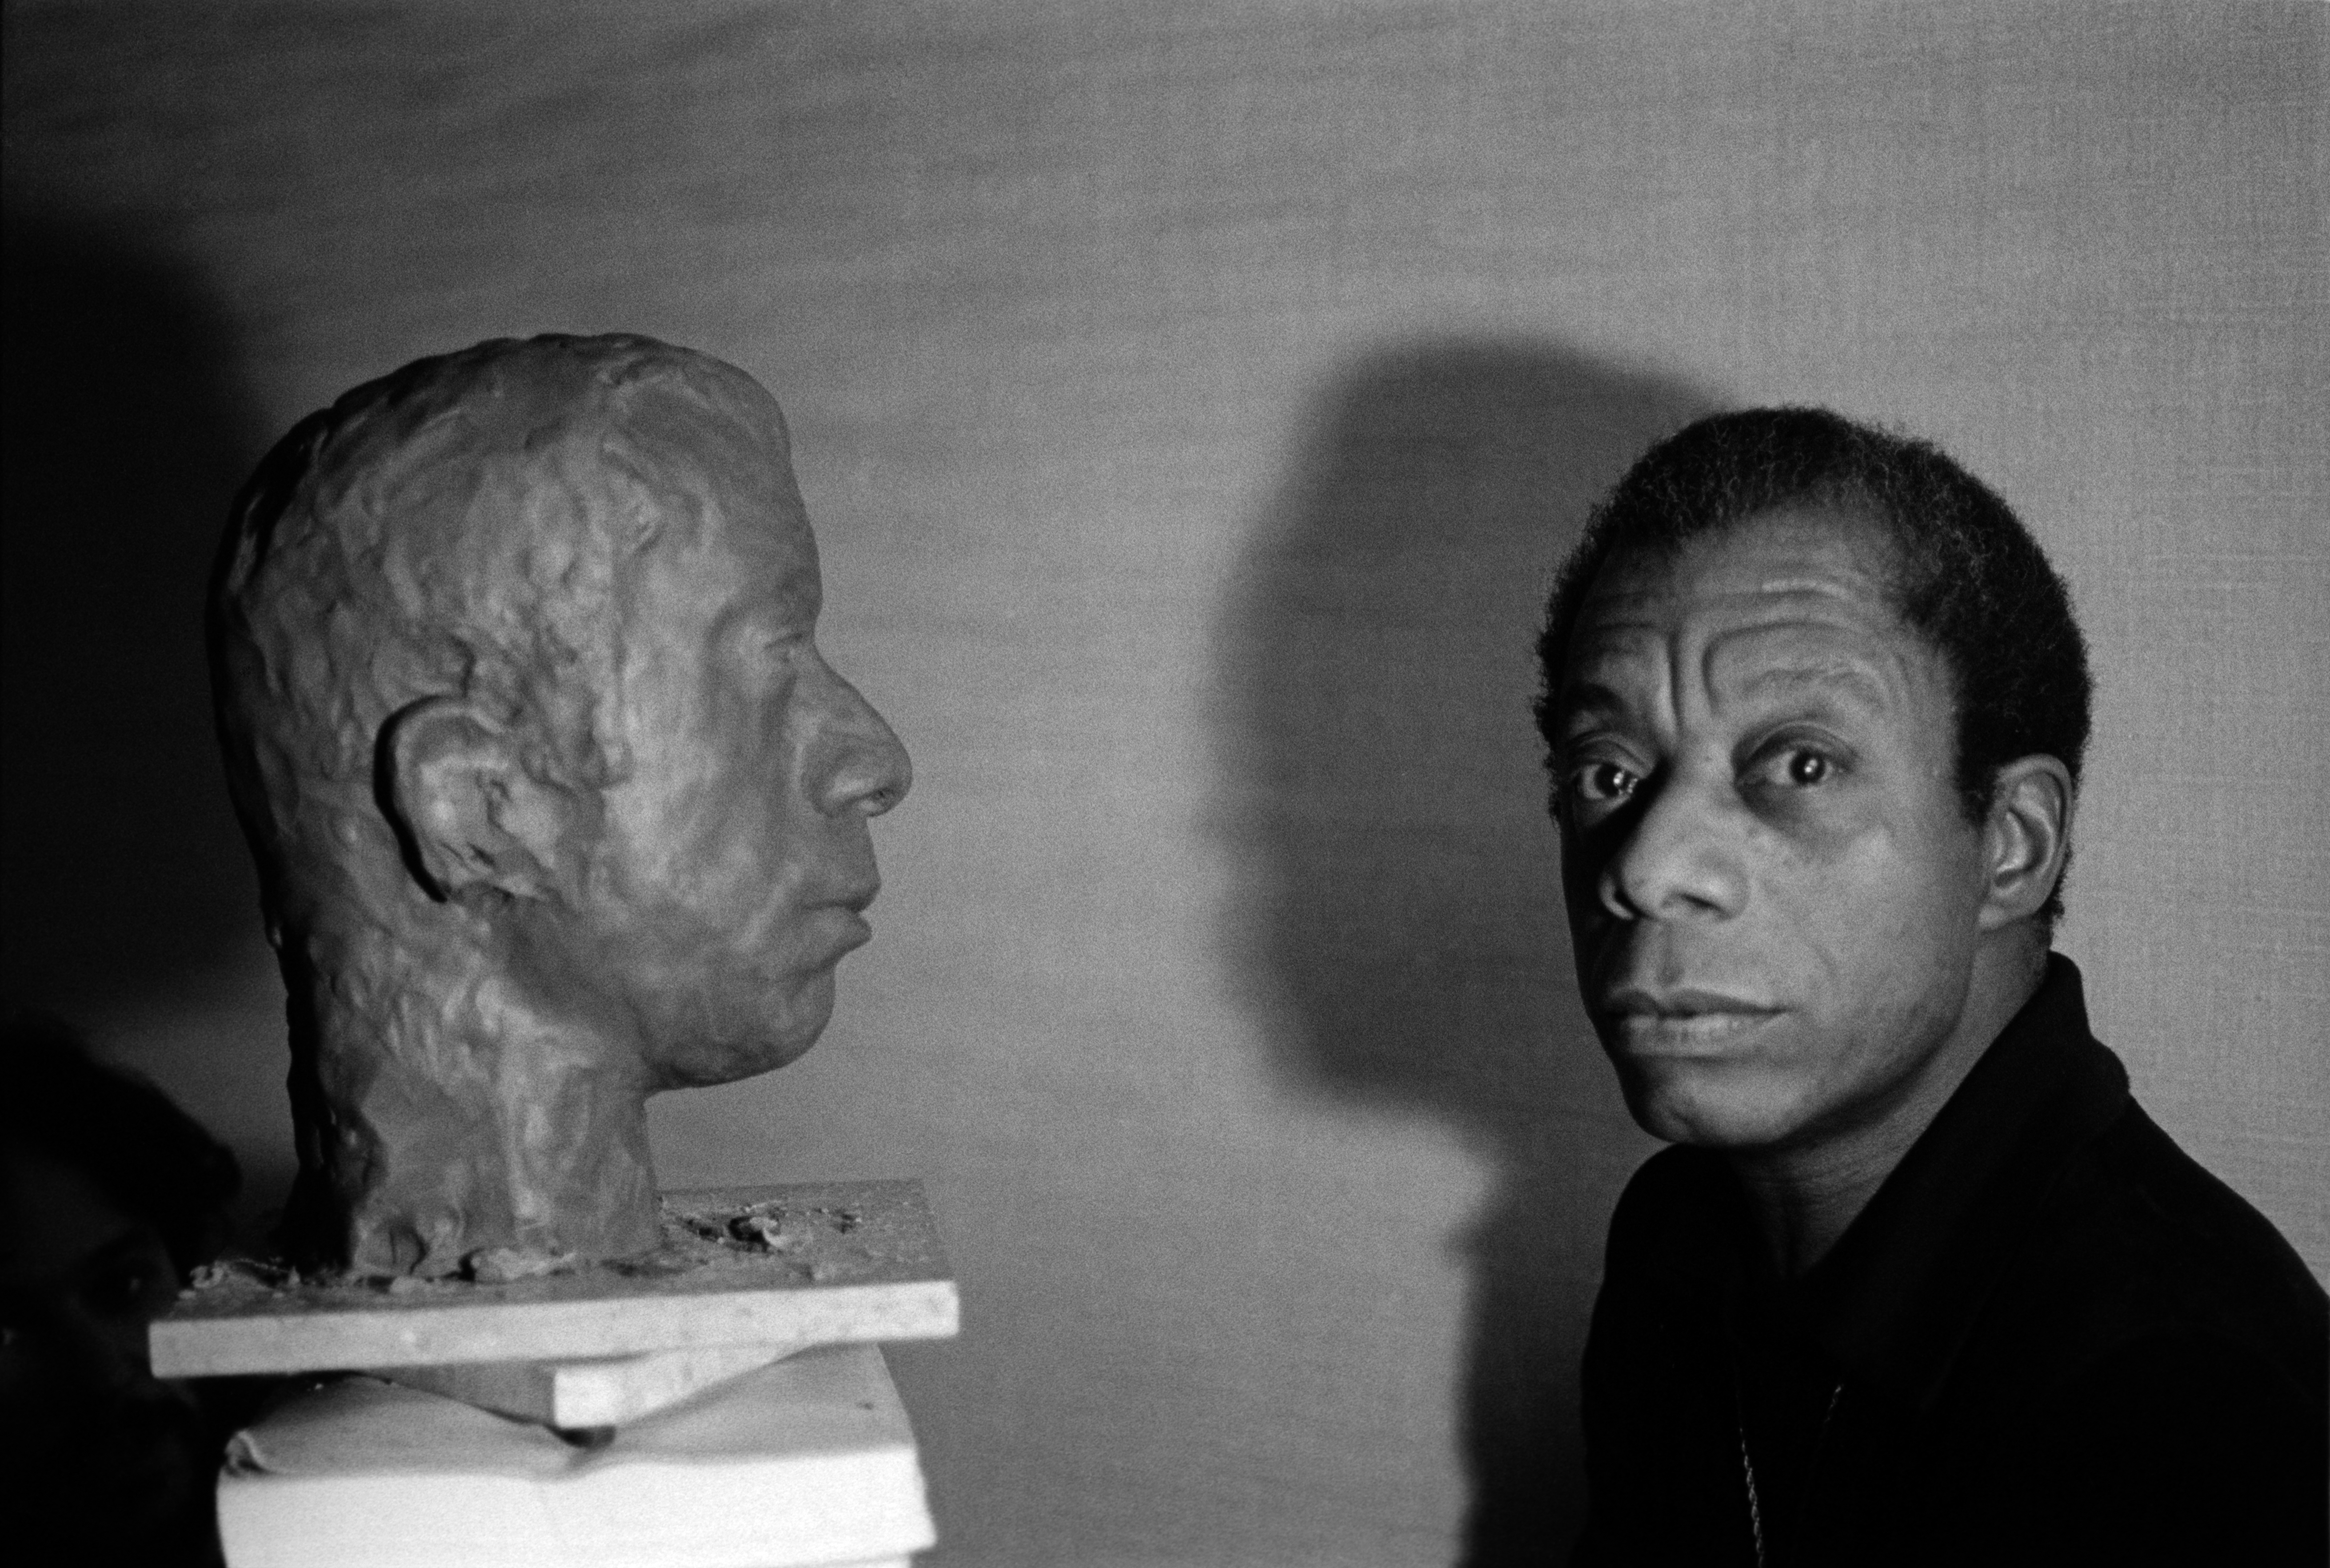 James Baldwin with the bust of his head by American artist, Lawrence Wolhandler - in his hotel room, rue des Grands Augustins, Paris, France. 1975. James Baldwin avec le buste de sa tte fait par l'artiste Americain, Lawrence Wolhandler - dans sa chambre d'h™tel Rue des Grands Augustins, Paris, France. 1975.